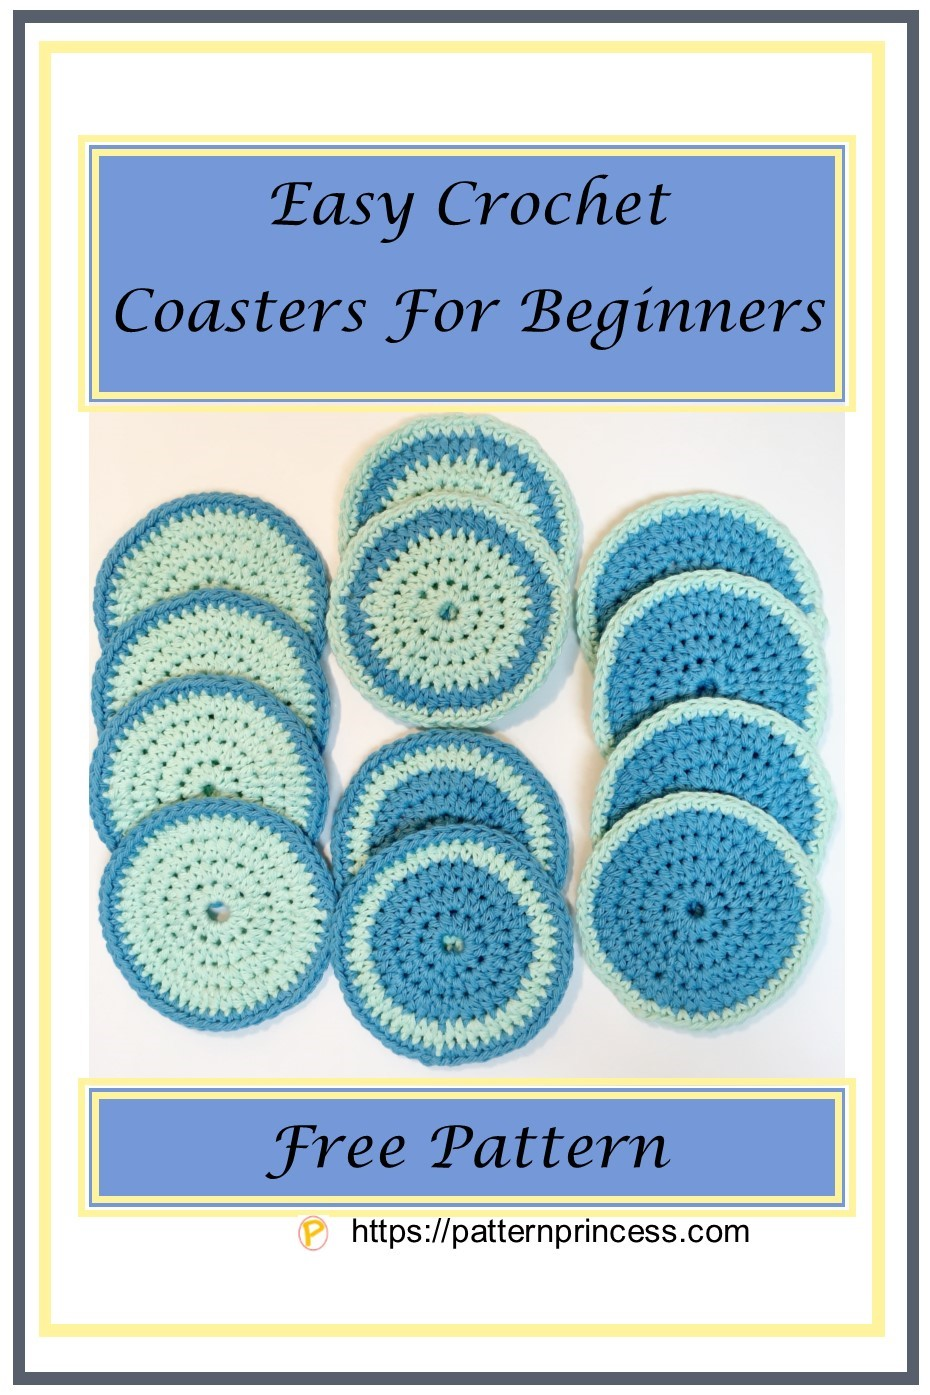 Easy Crochet Coasters For Beginners Pattern Princess